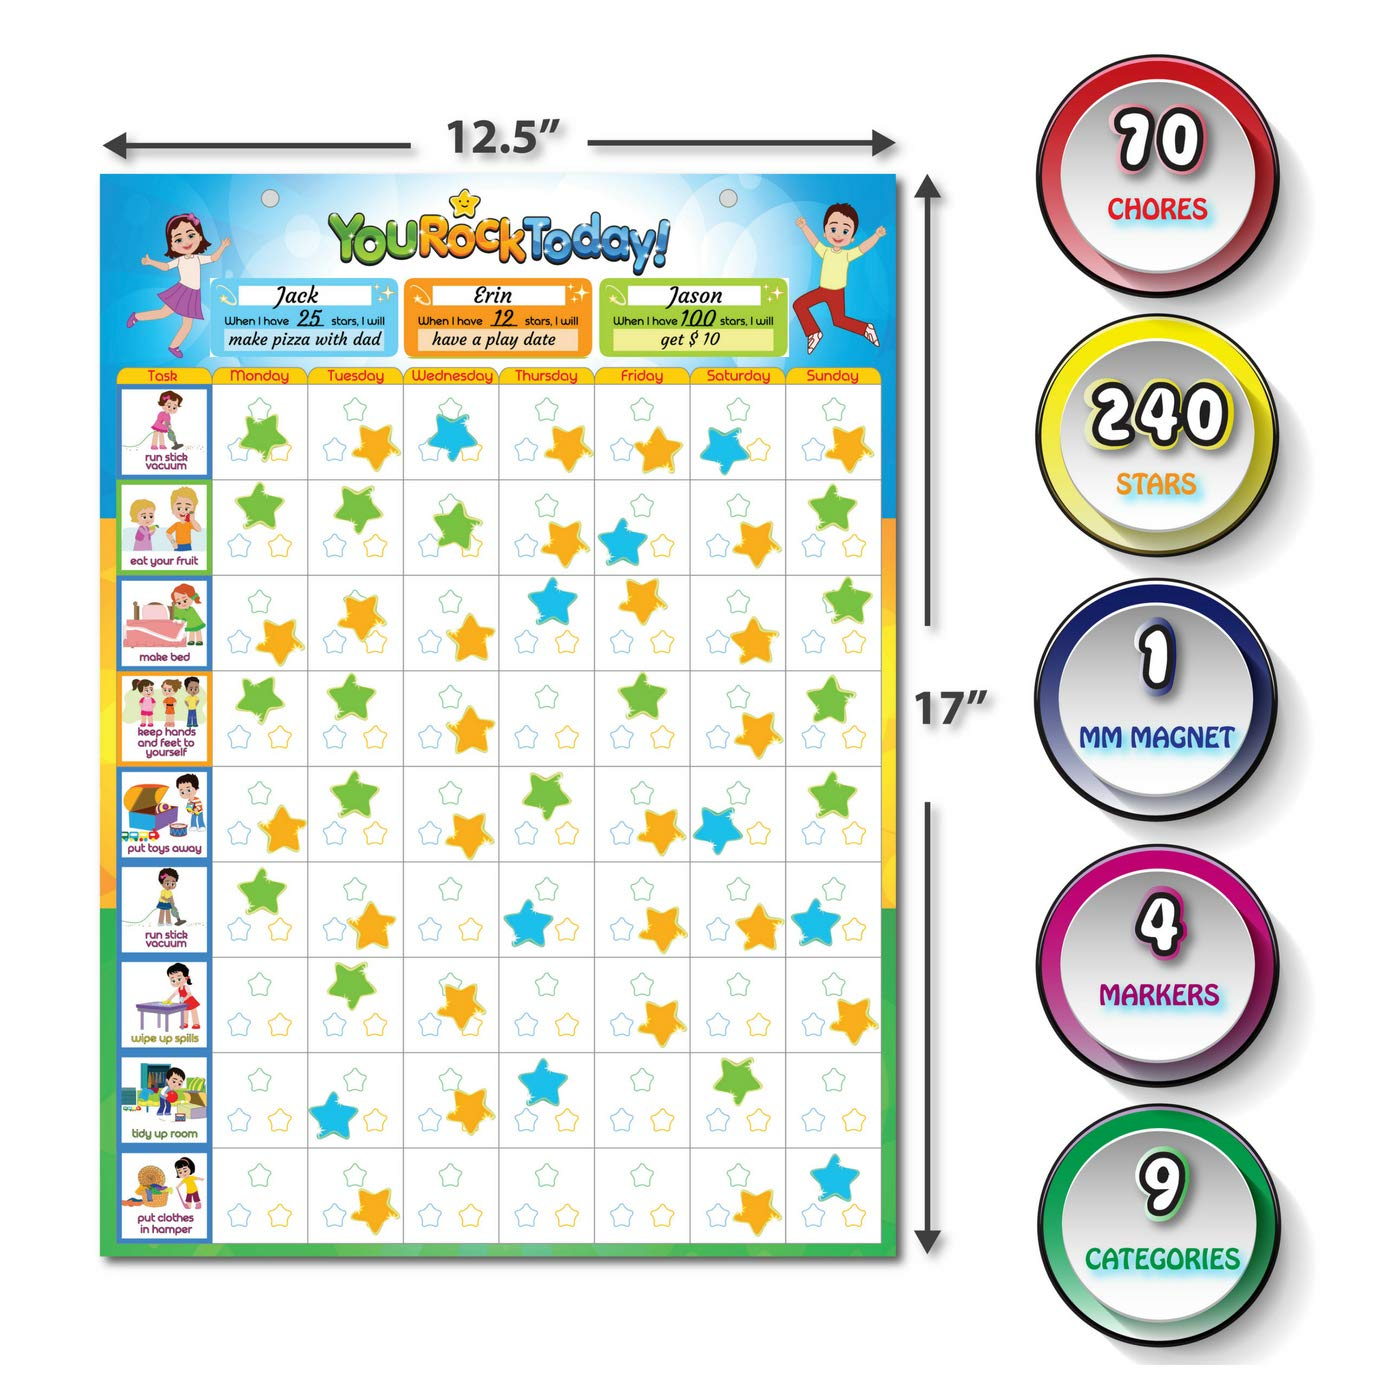 """Magnetic Chore Charts for One or Multiple Kids & Toddlers for Fridge, Magnetic Dry Erase Board, 70 Chore, Reward, Responsibility, Behavior Chart, 240 Star Magnets, 4 Markers (12.5"""" x 17"""")"""